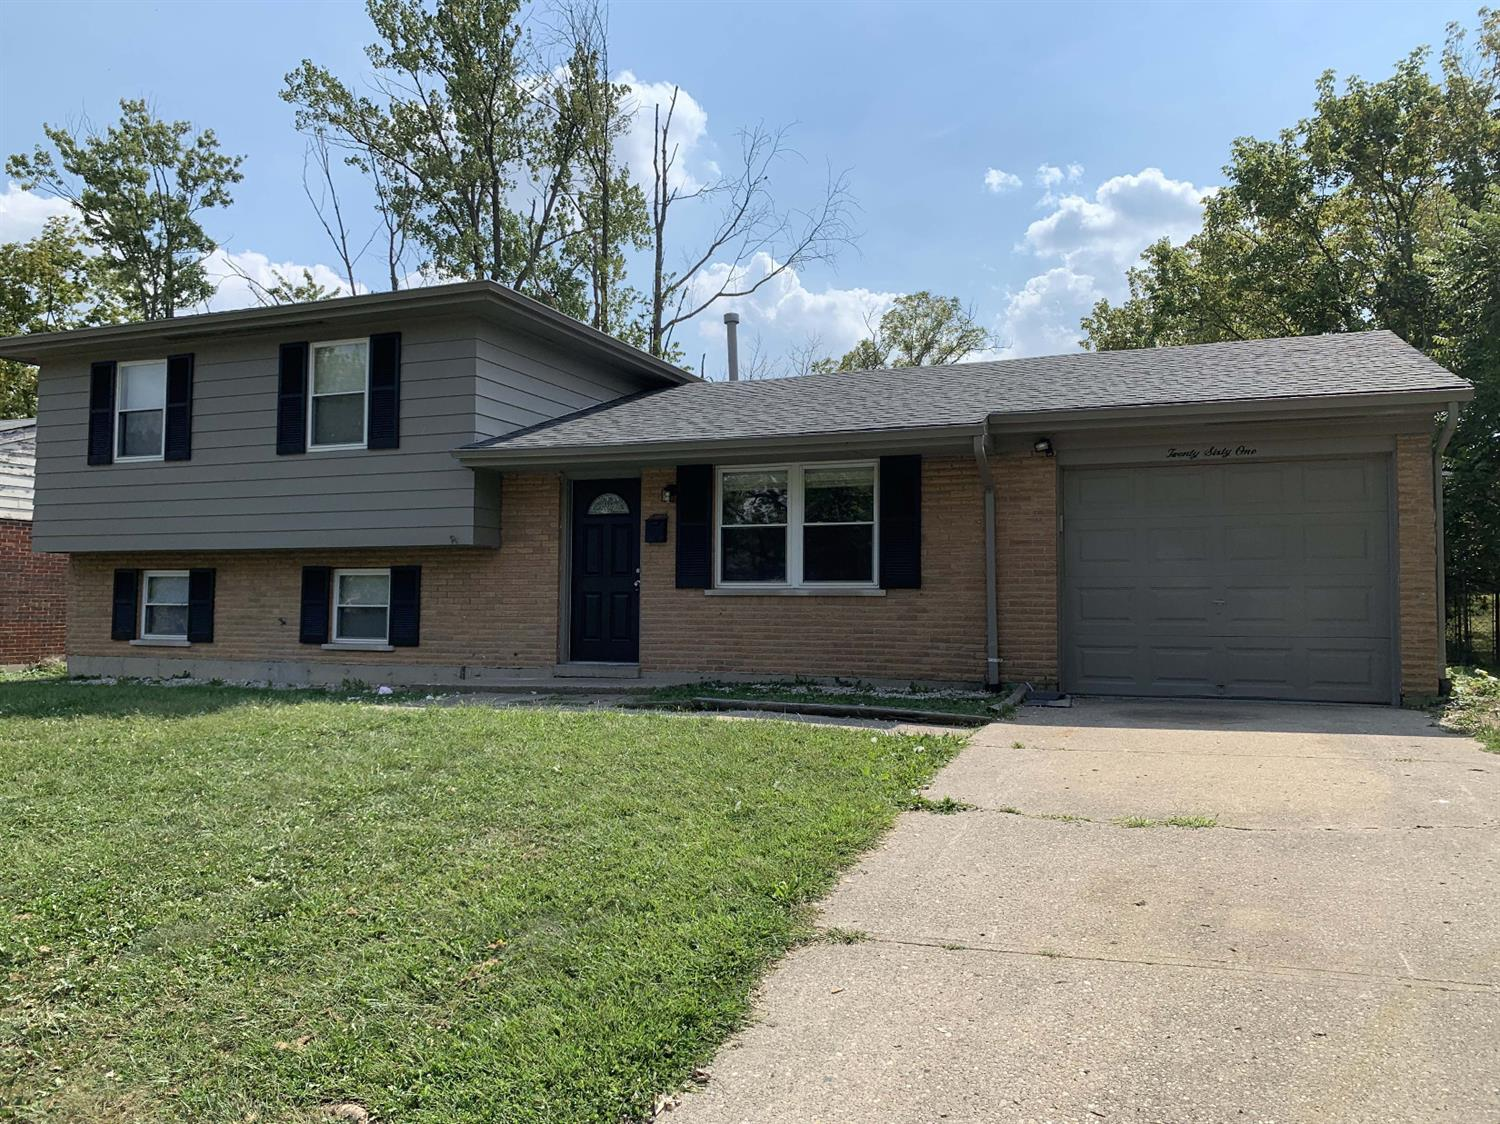 2061 Sevenhills Dr Springfield Twp., OH